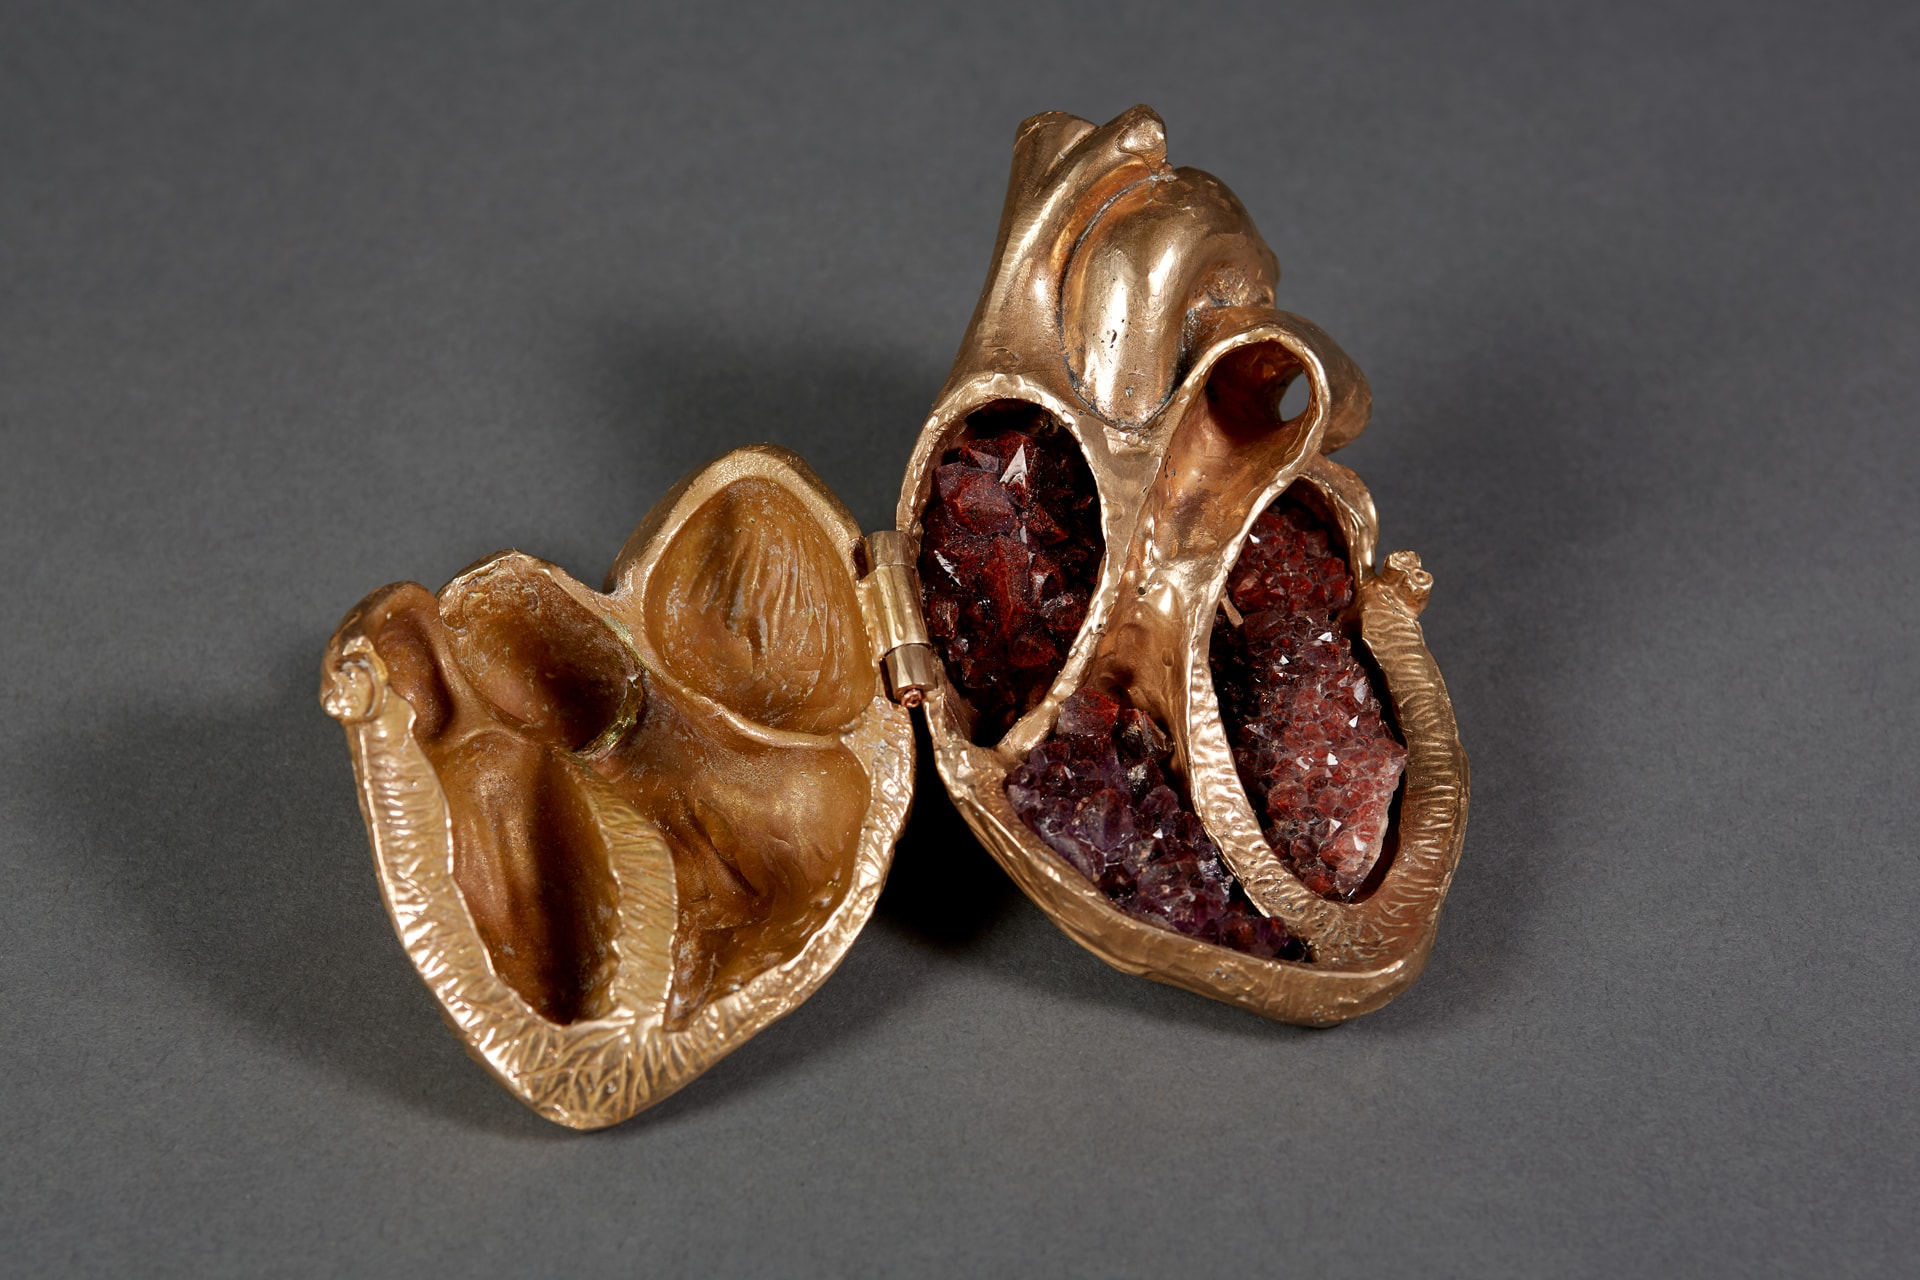 Heart of Gold (Bronze, Thunder Bay amethyst 3in x3.5in x5.75) by Debra Baxter. Photo: Kim Richardson